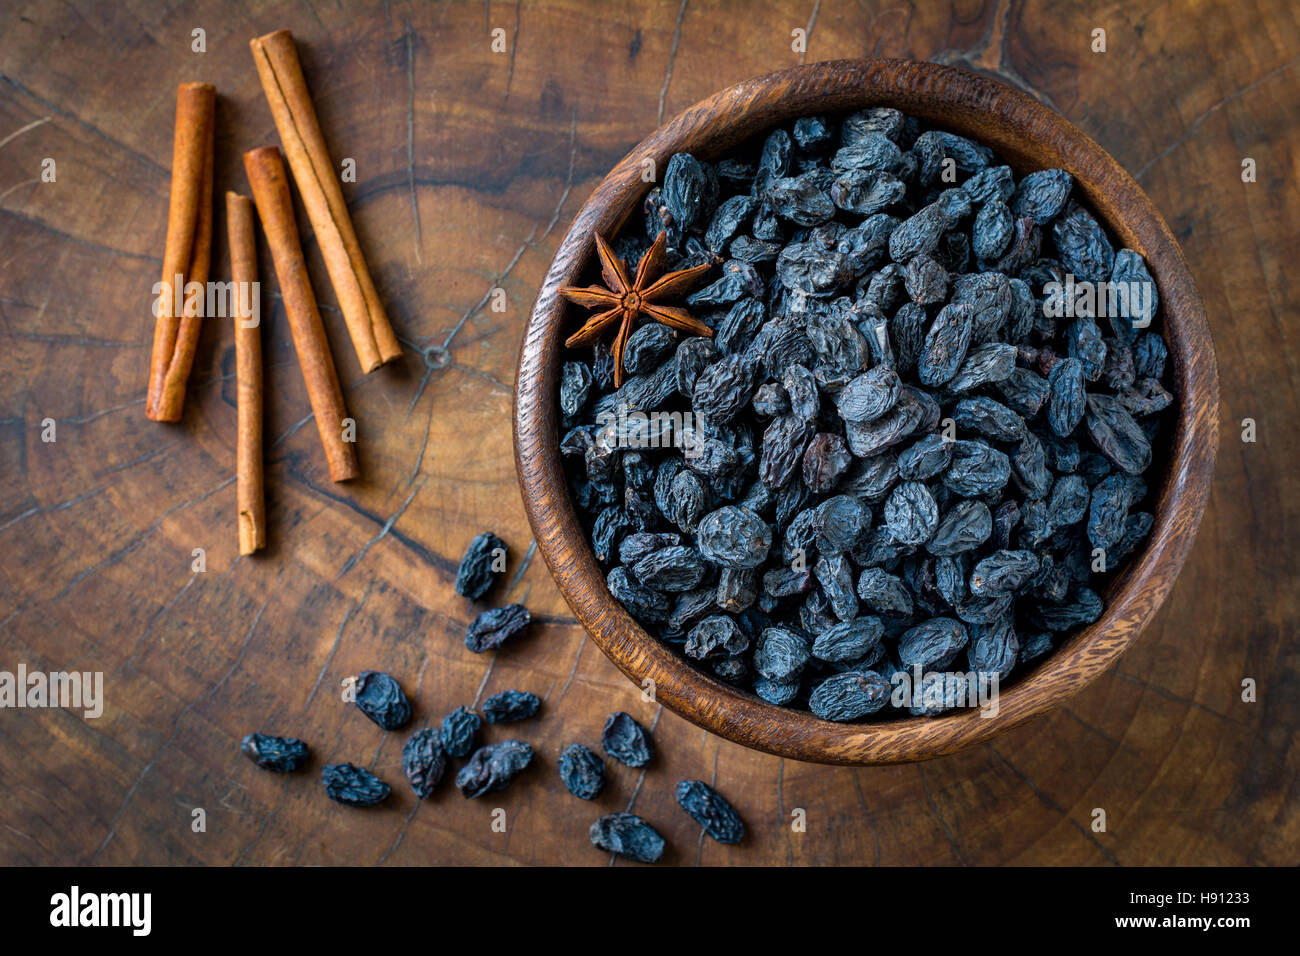 Black raisins and spices in wooden bowl. Top view, close up, horizontal - Stock Image